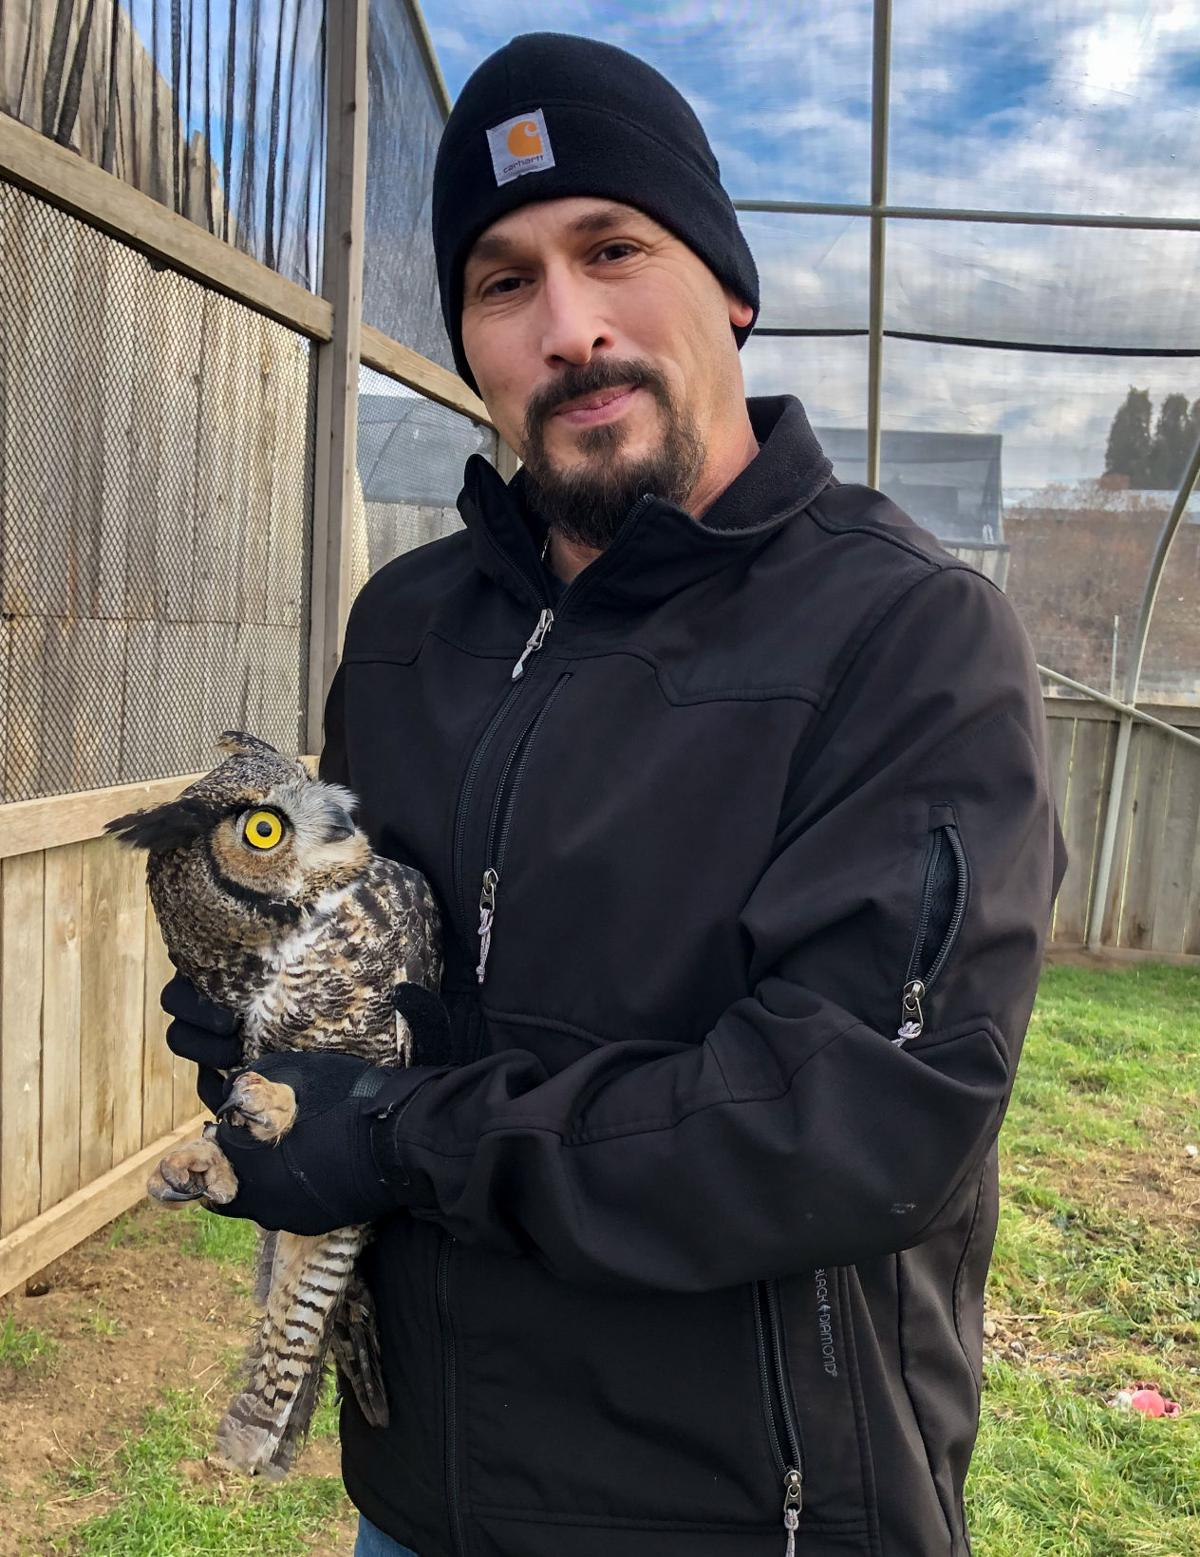 Trucker releases owl he saved back to wild